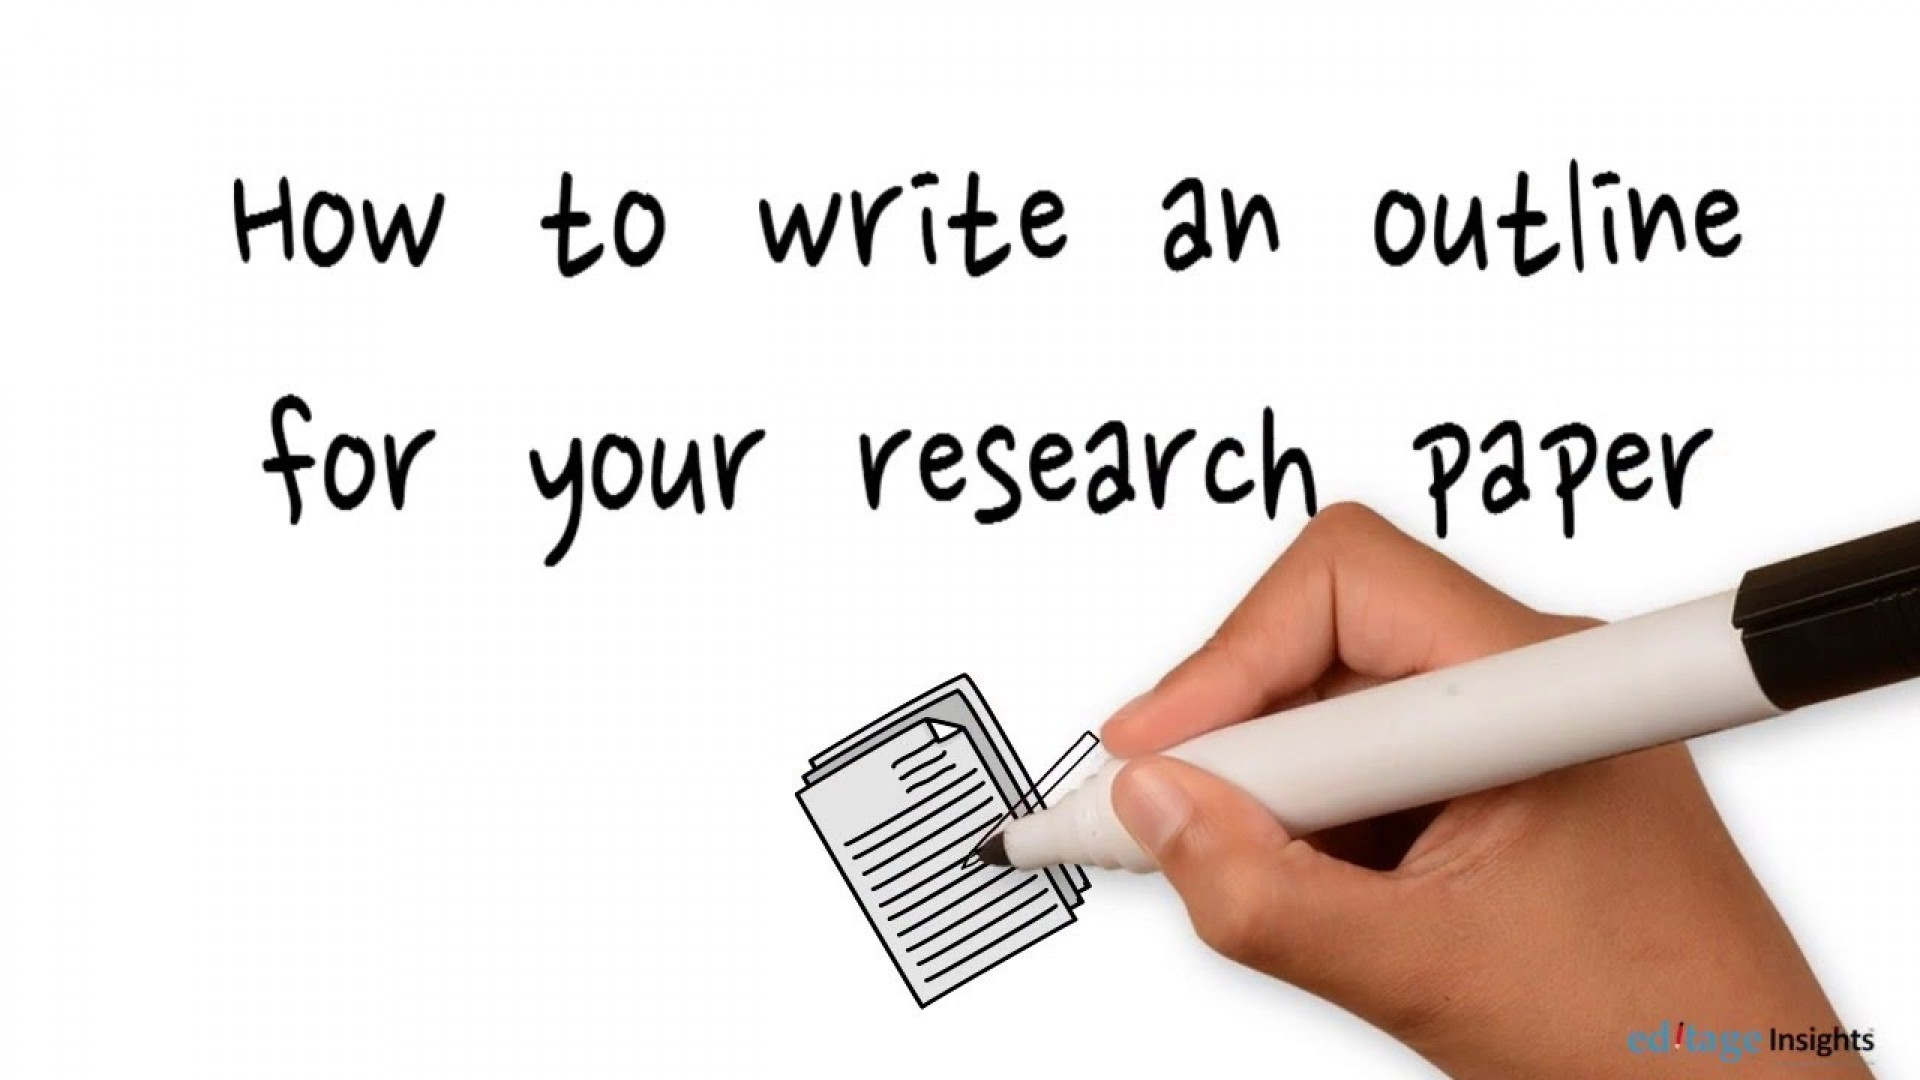 006 Help Writing Researchs Maxresdefault Outstanding Research Papers My Paper 1920